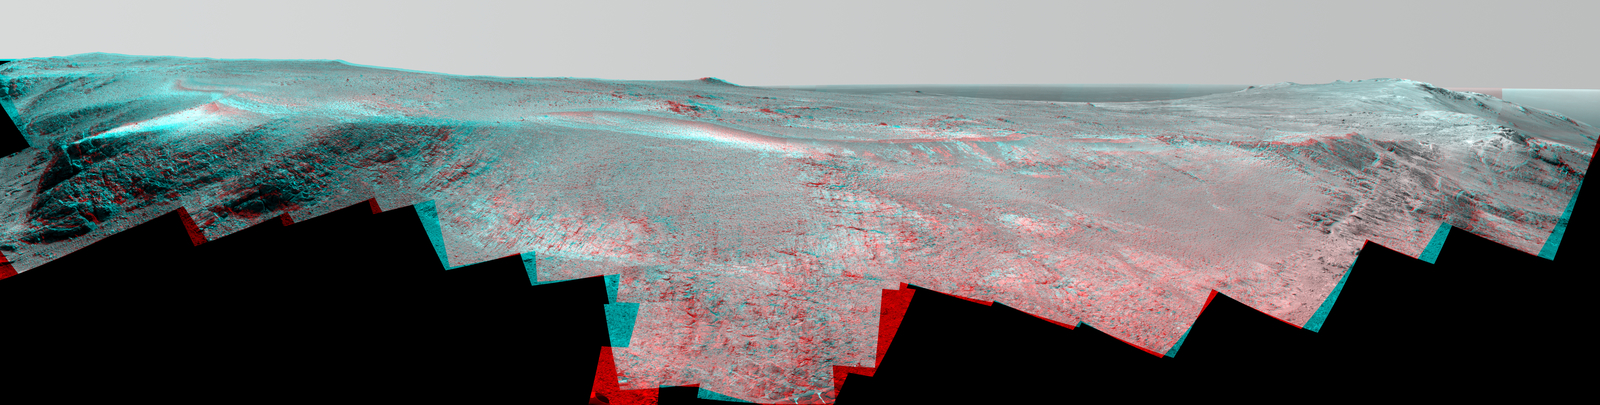 "A grooved ridge called ""Rocheport"" on the rim of Mars' Endeavour Crater spans this stereo scene from NASA's Mars rover Opportunity. The view combines images from left eye and right eye of the rover's Pancam to appear three-dimensional when seen through blue-red glasses with the red lens on the left."